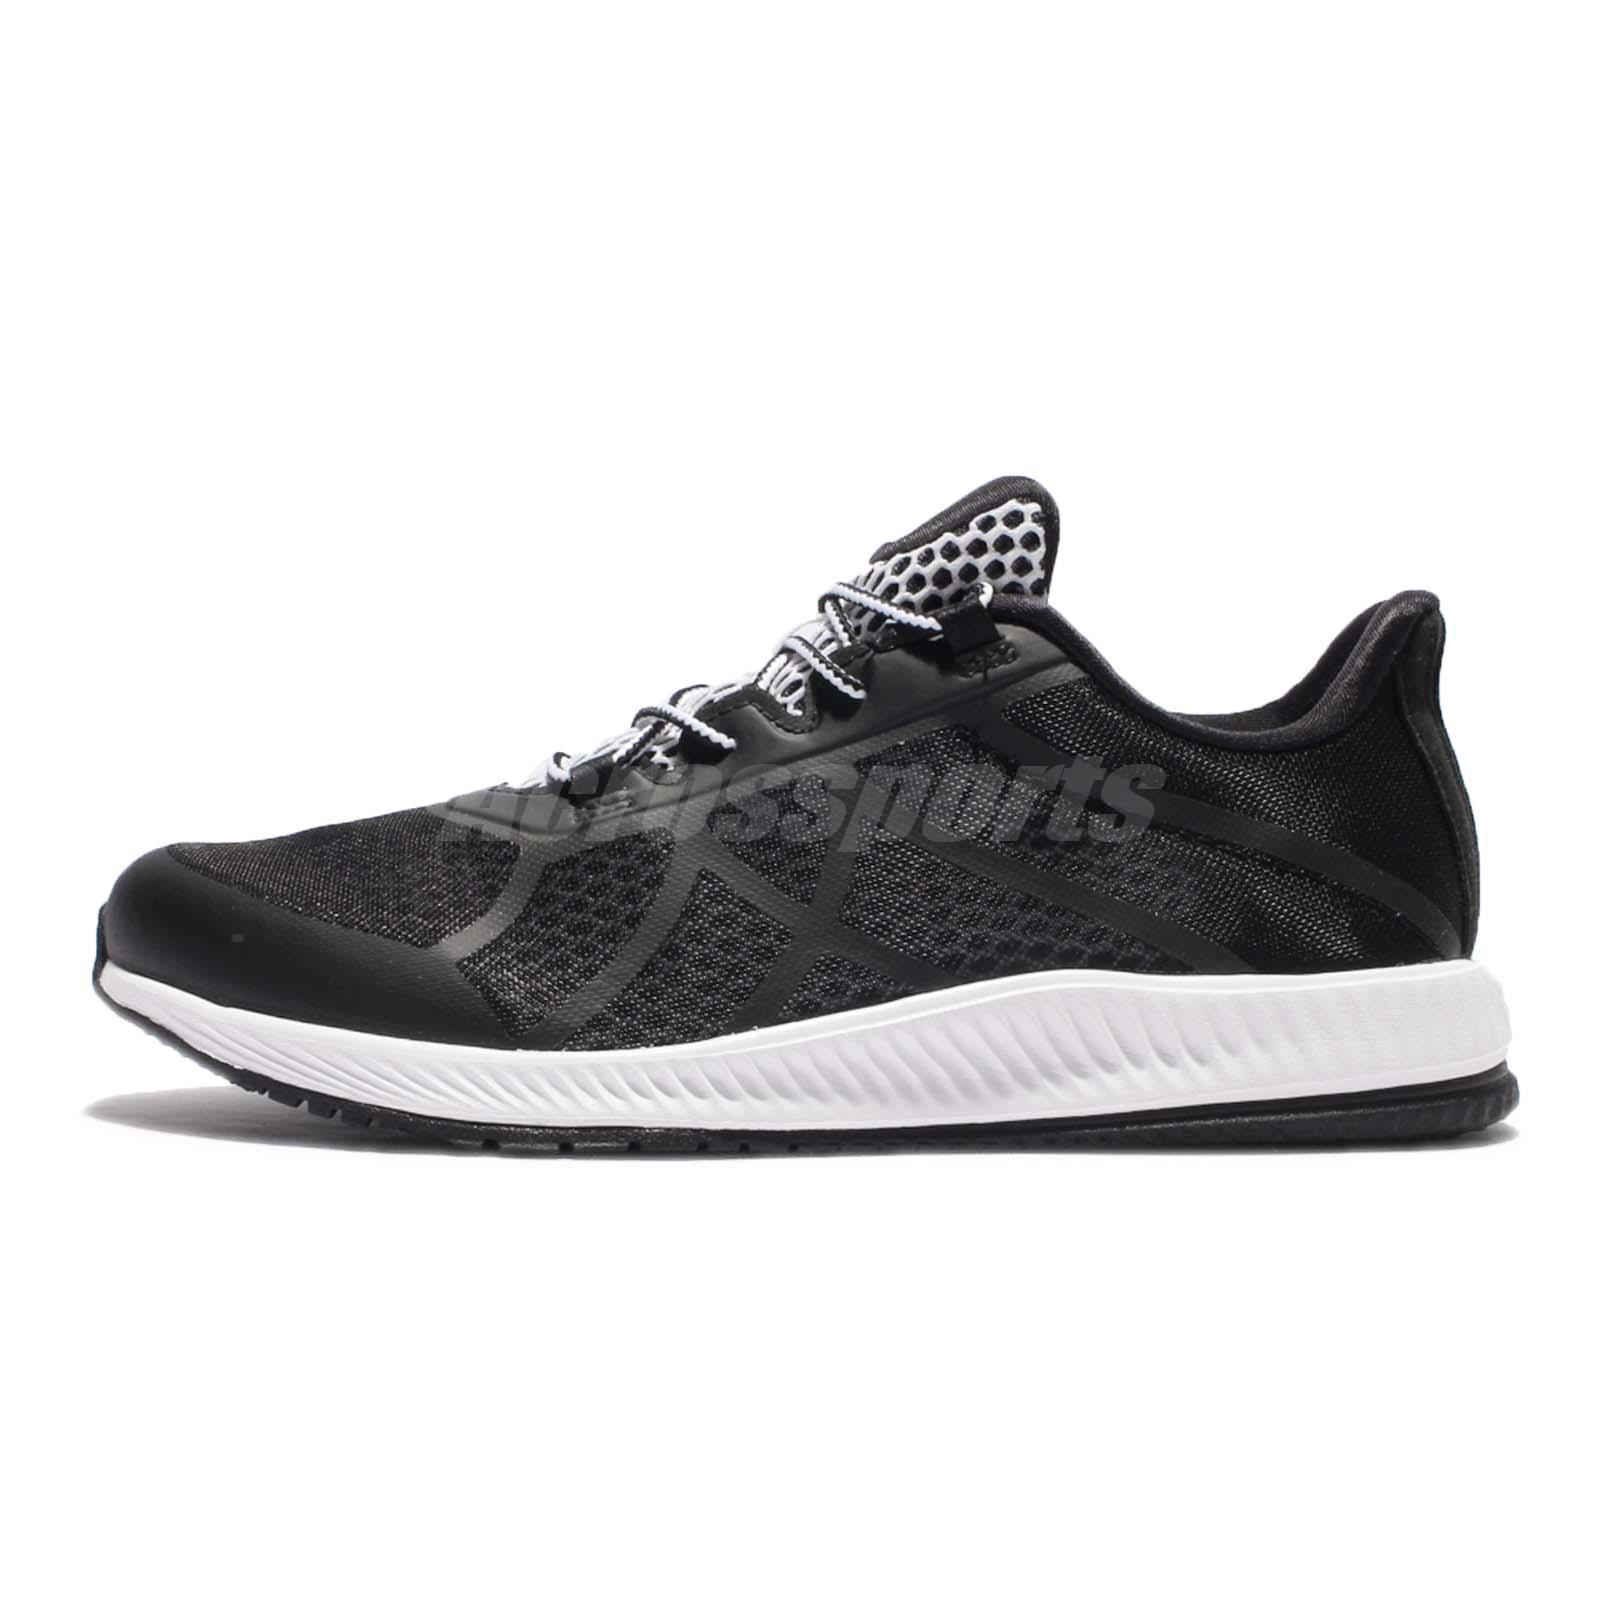 adidas Gymbreaker B Black White Women Cross Training Shoes Trainers BB0981